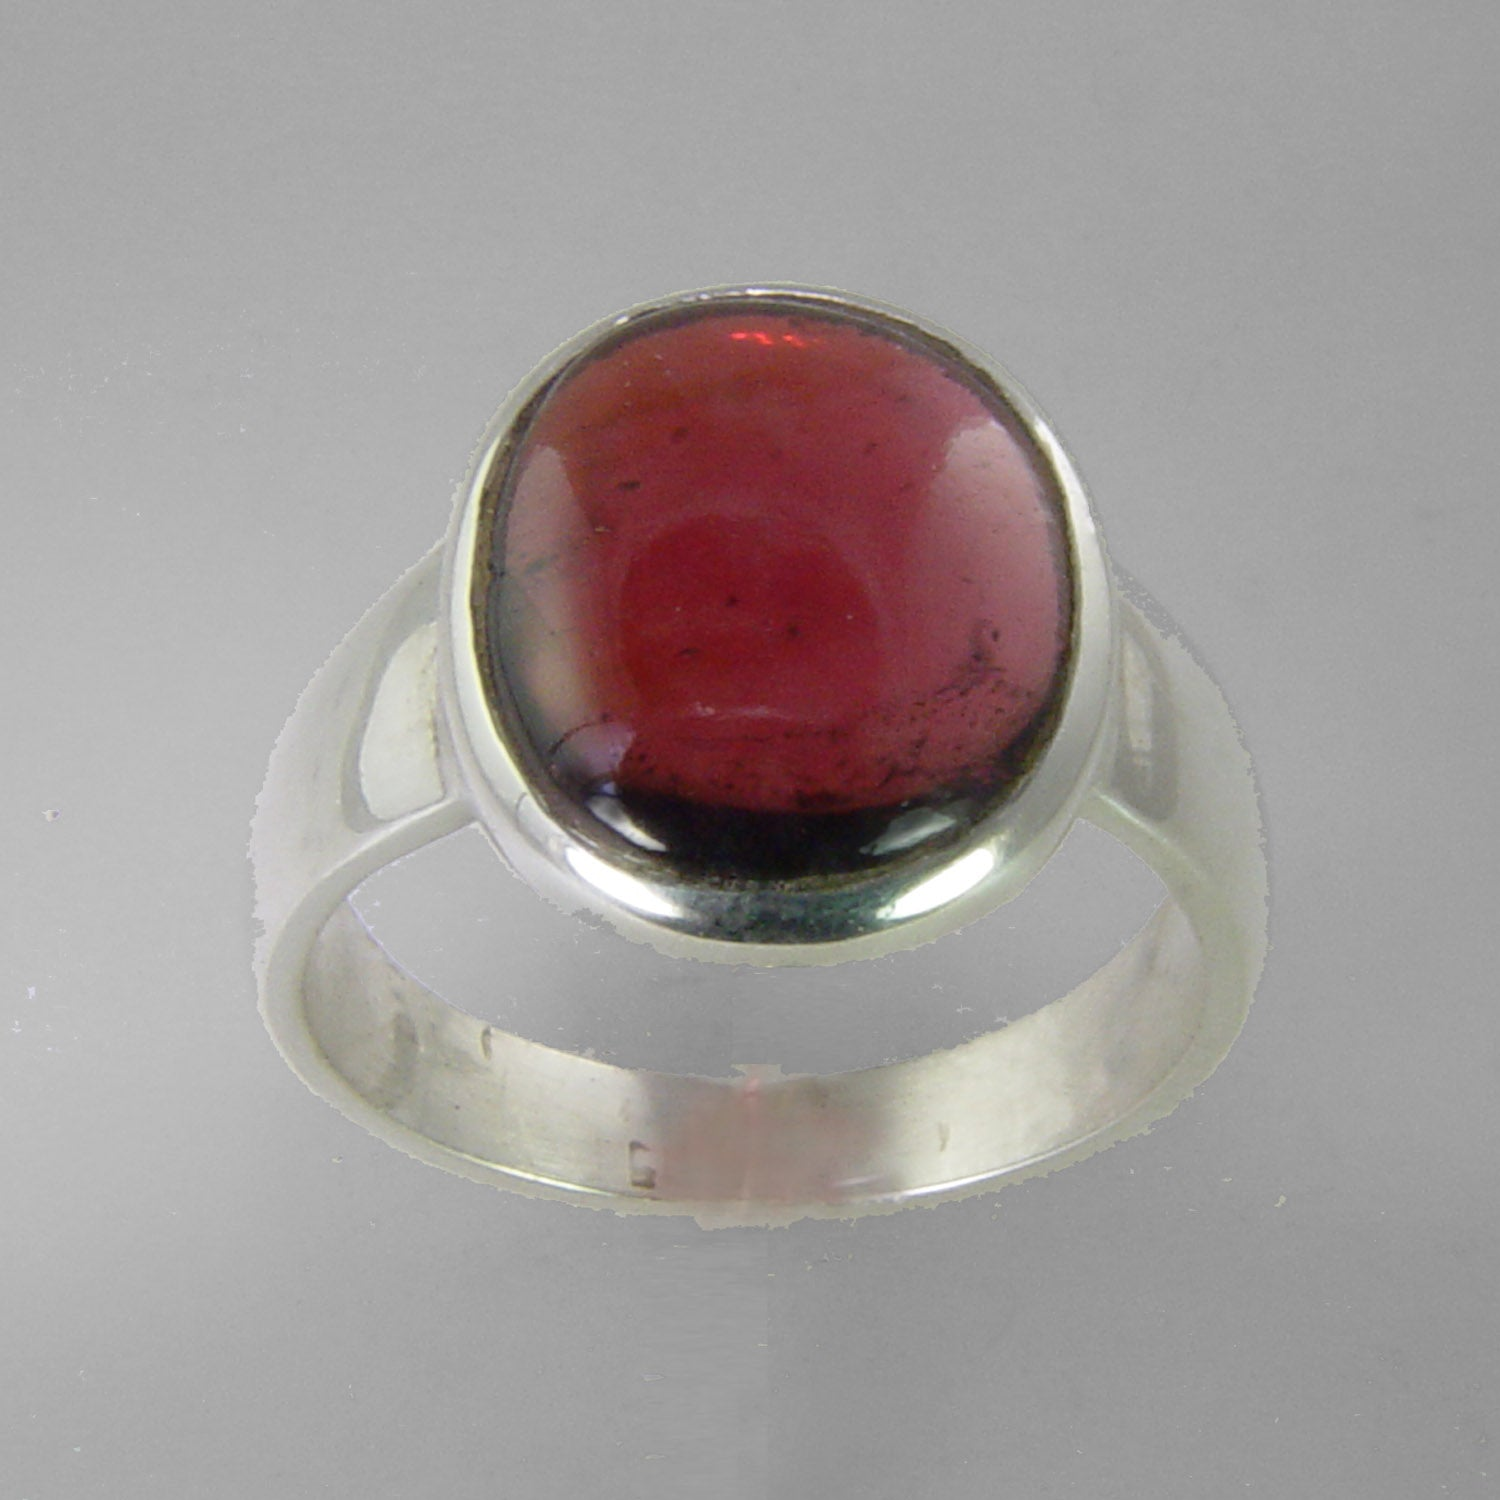 Garnet 2.8 ct Oval Cab Sterling Silver Ring, Size 6